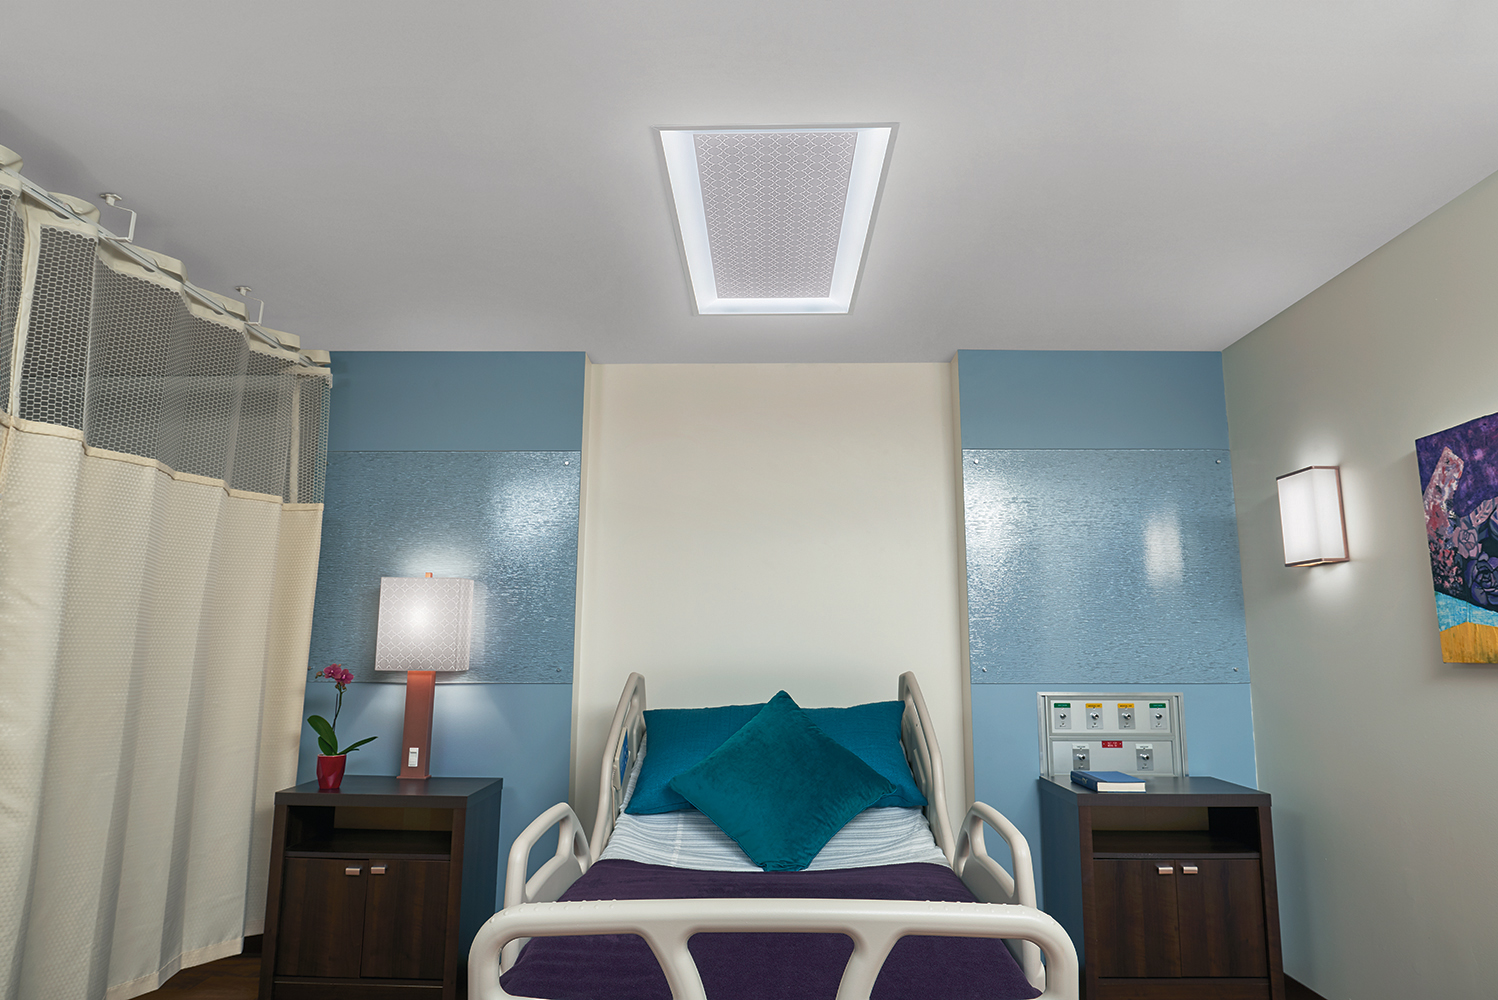 Over Bed Lights Healthcare Lighting Luminaires For Healthcare Design